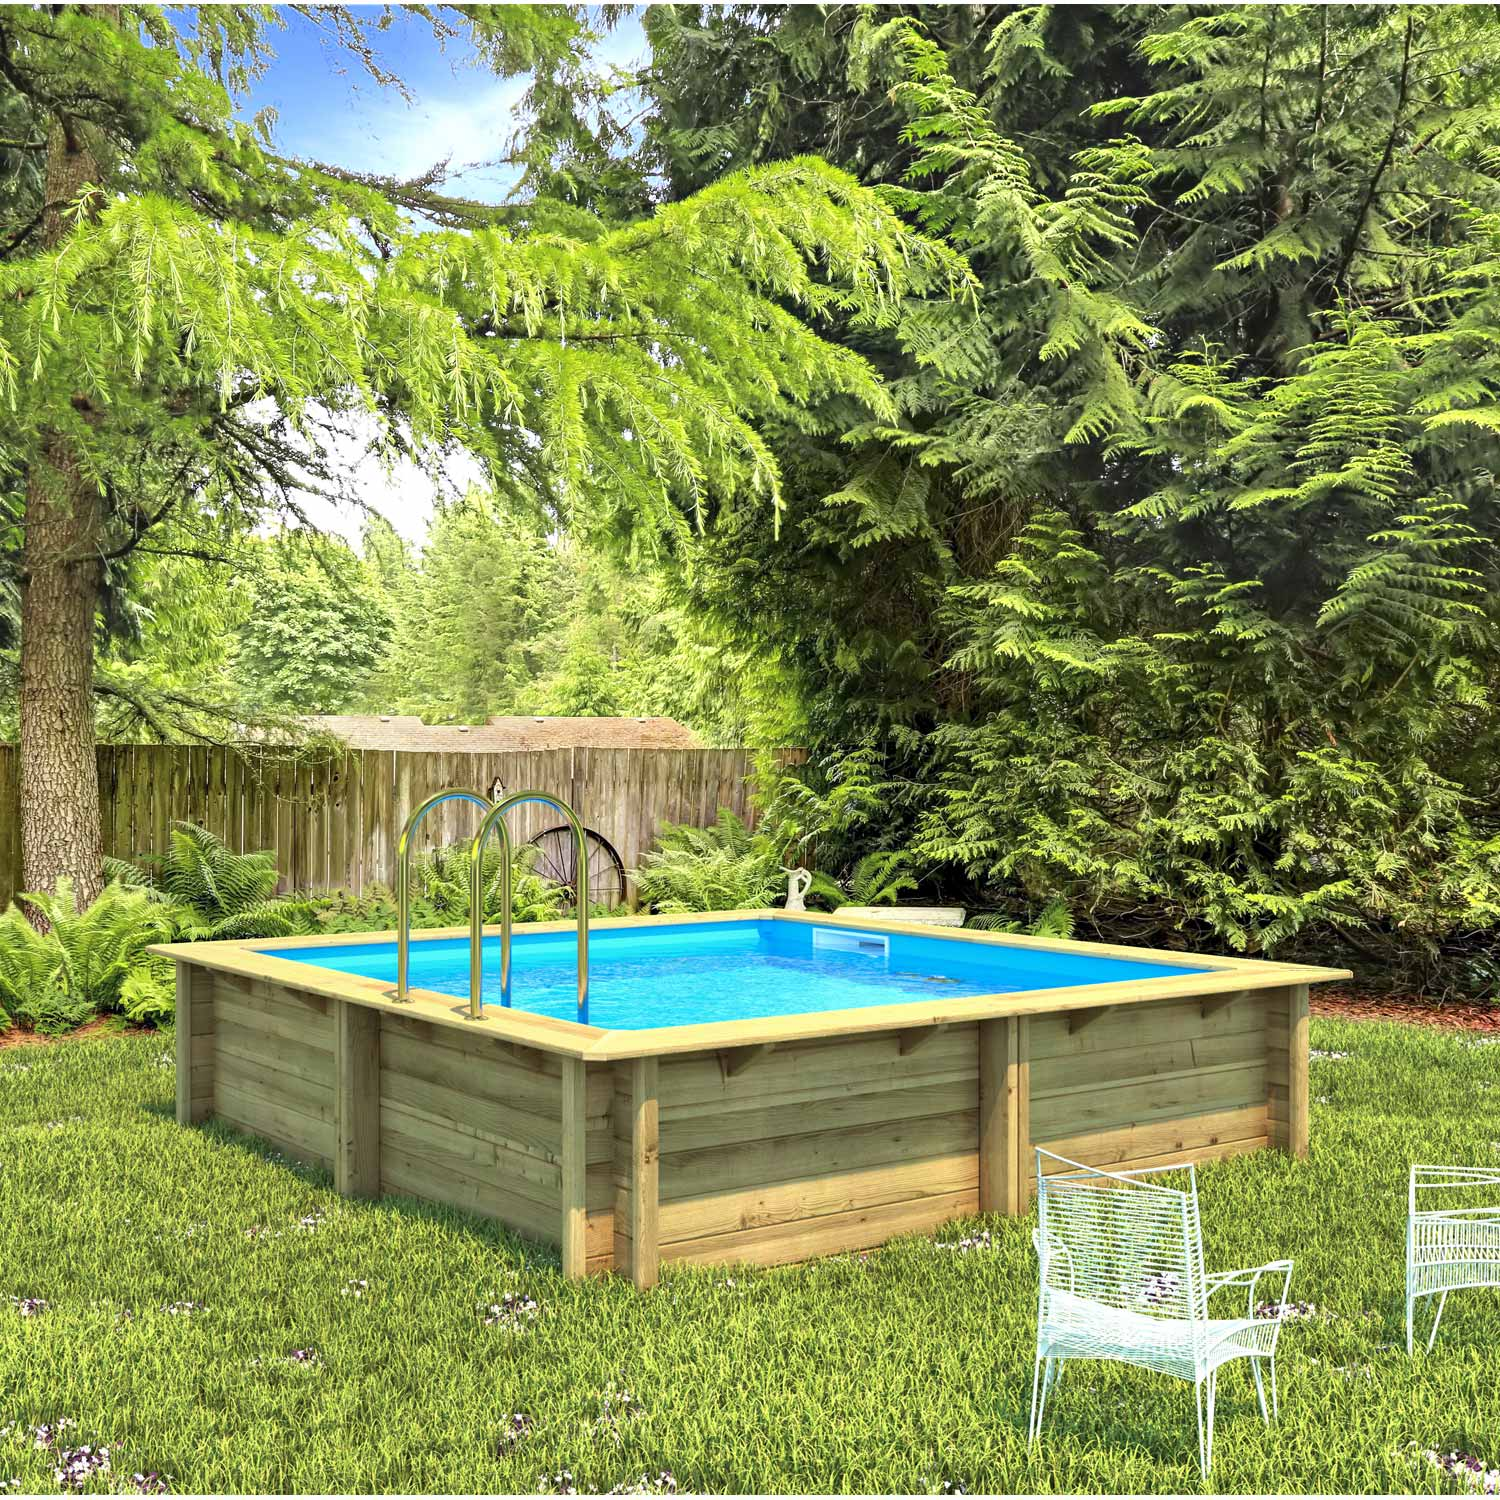 Piscine en bois semi enterre leroy merlin piscine semi enterree rennes with piscine en bois - Piscine gonflable leroy merlin ...